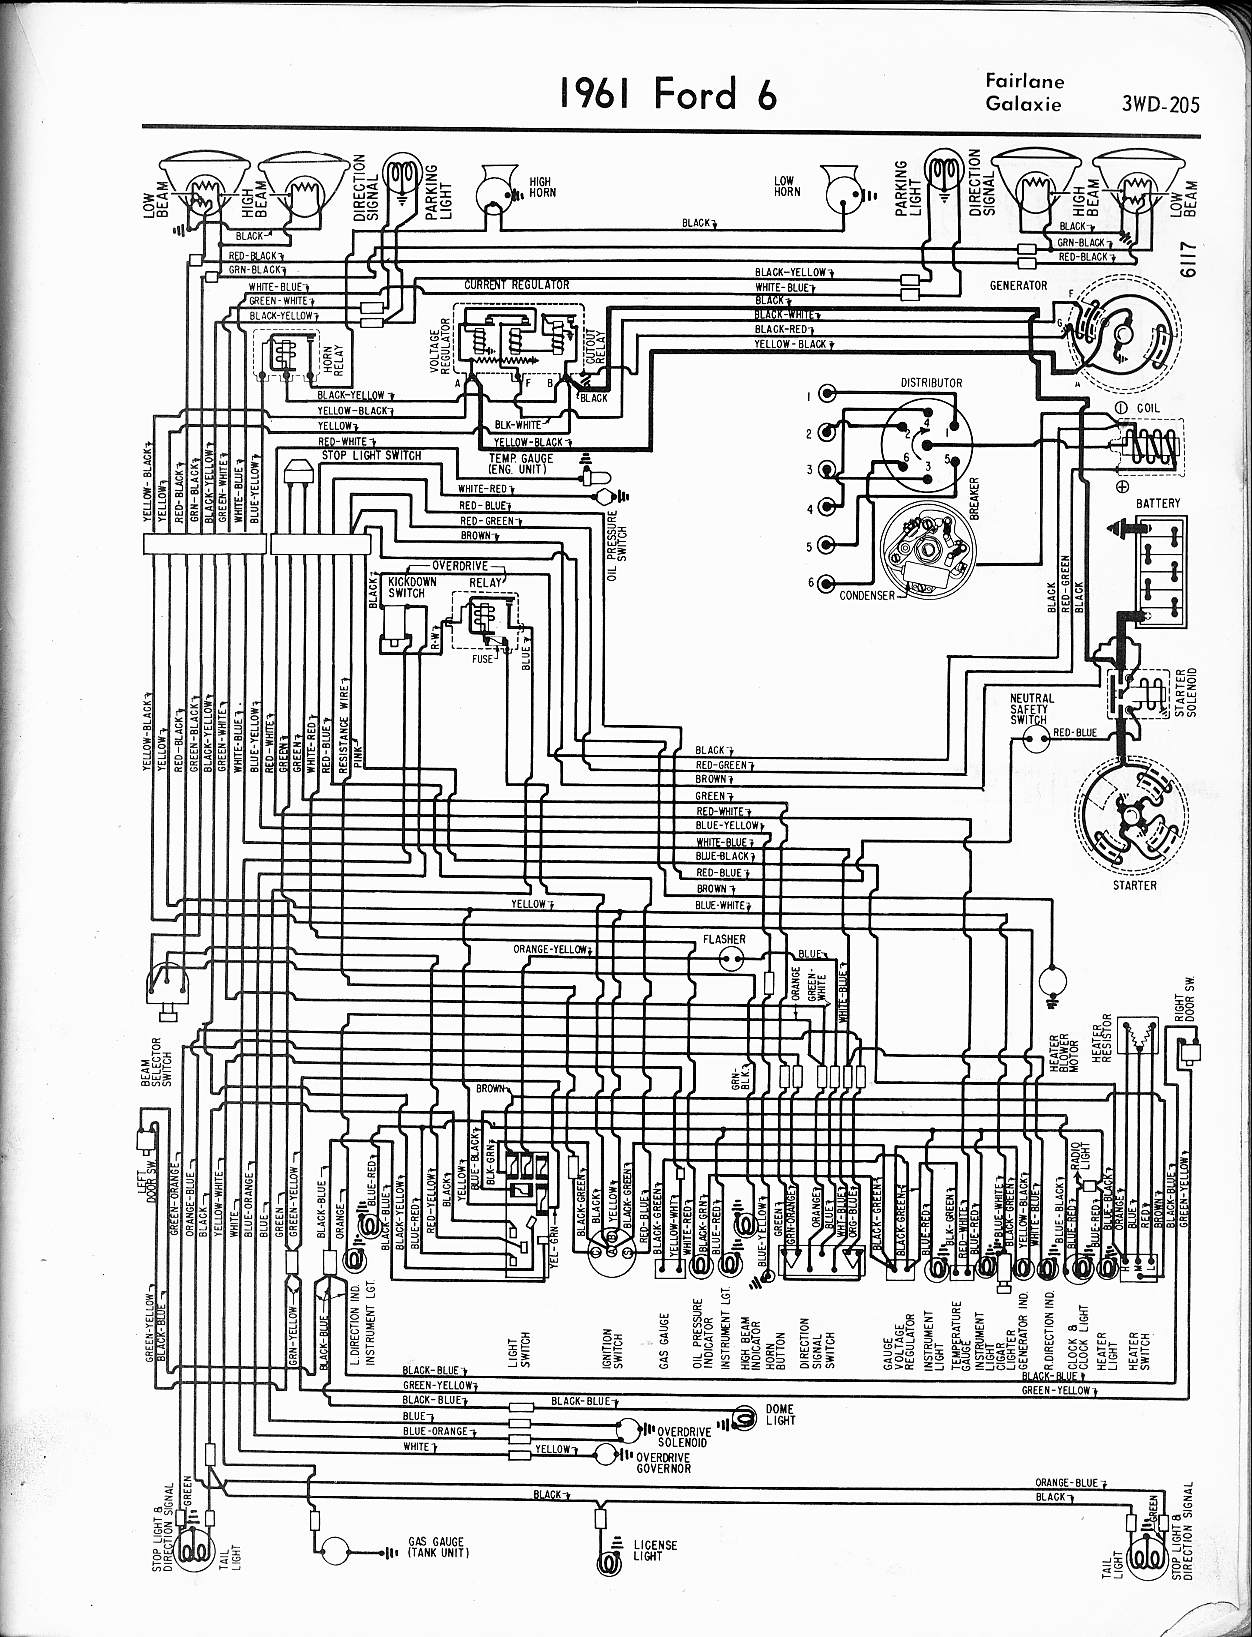 1965 Ford F100 Ignition Switch Wiring Diagram Detailed Schematics 1973 Ford  Truck Wiring Diagram 1972 Ford F250 Ignition Wiring Diagram